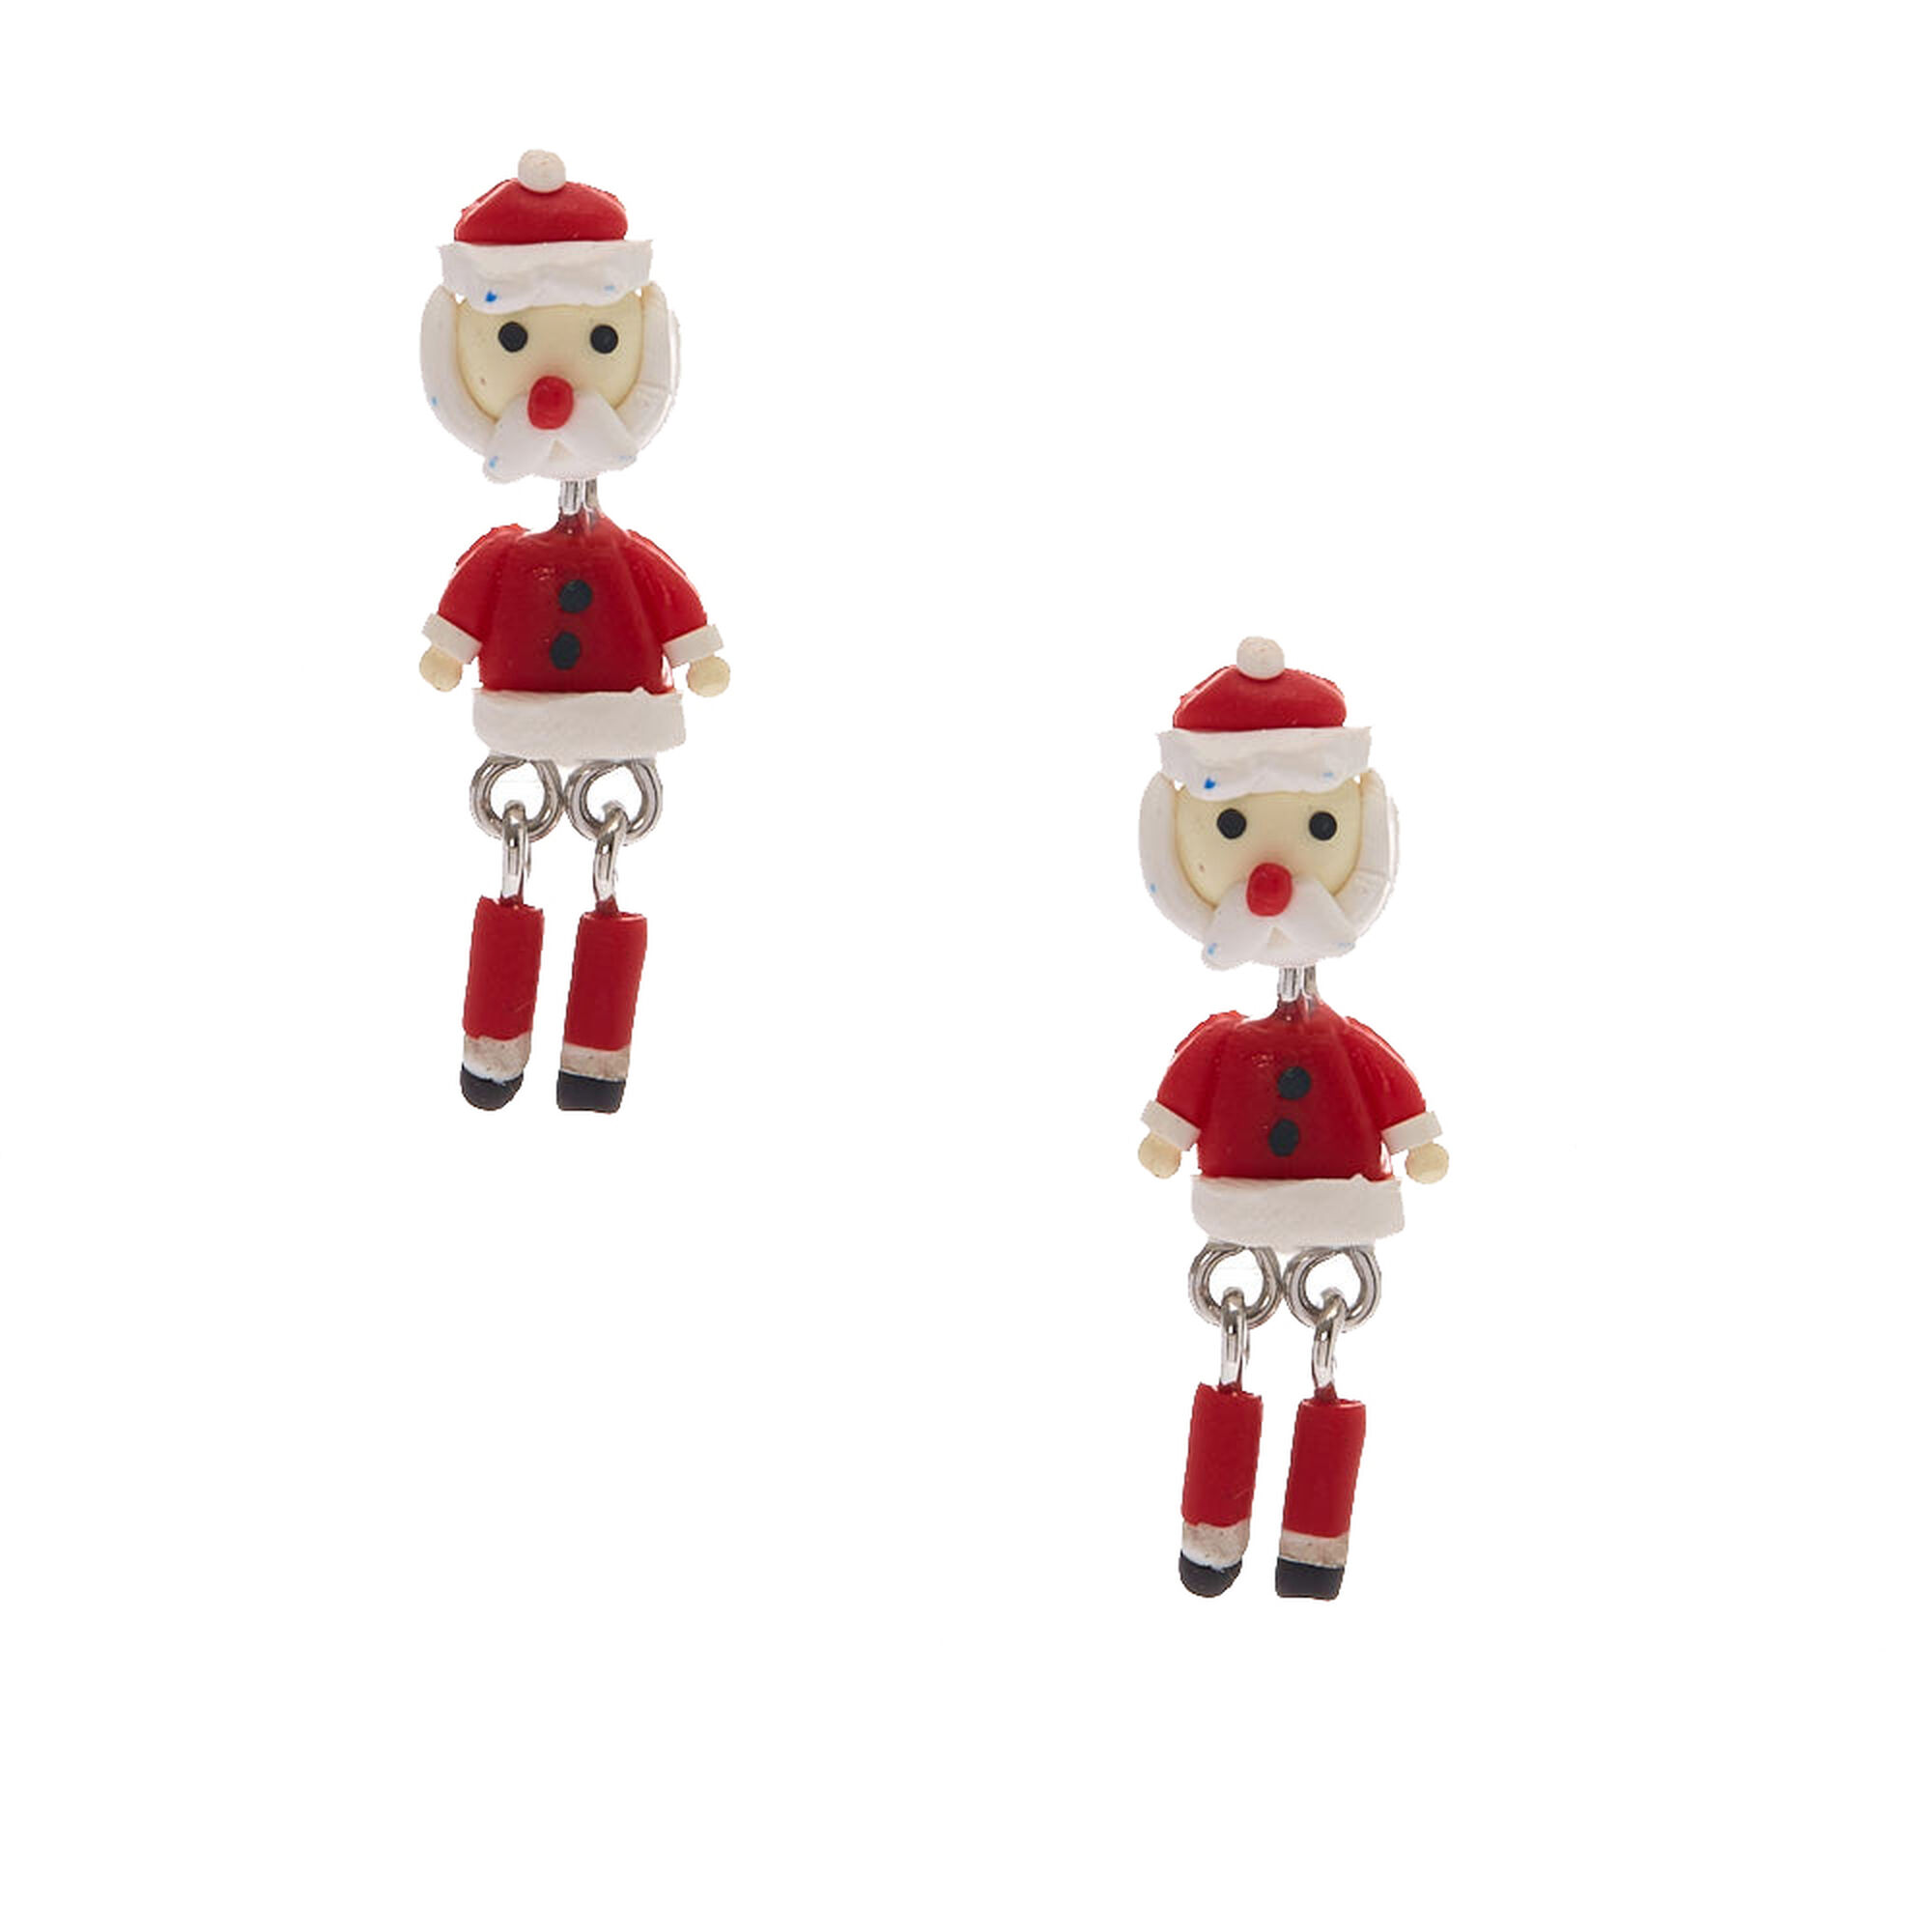 christmas santas windy decoration musical dancing animated figure hill claus amazon saxophone decor santa violin figurine inch dp com standing decorative collection